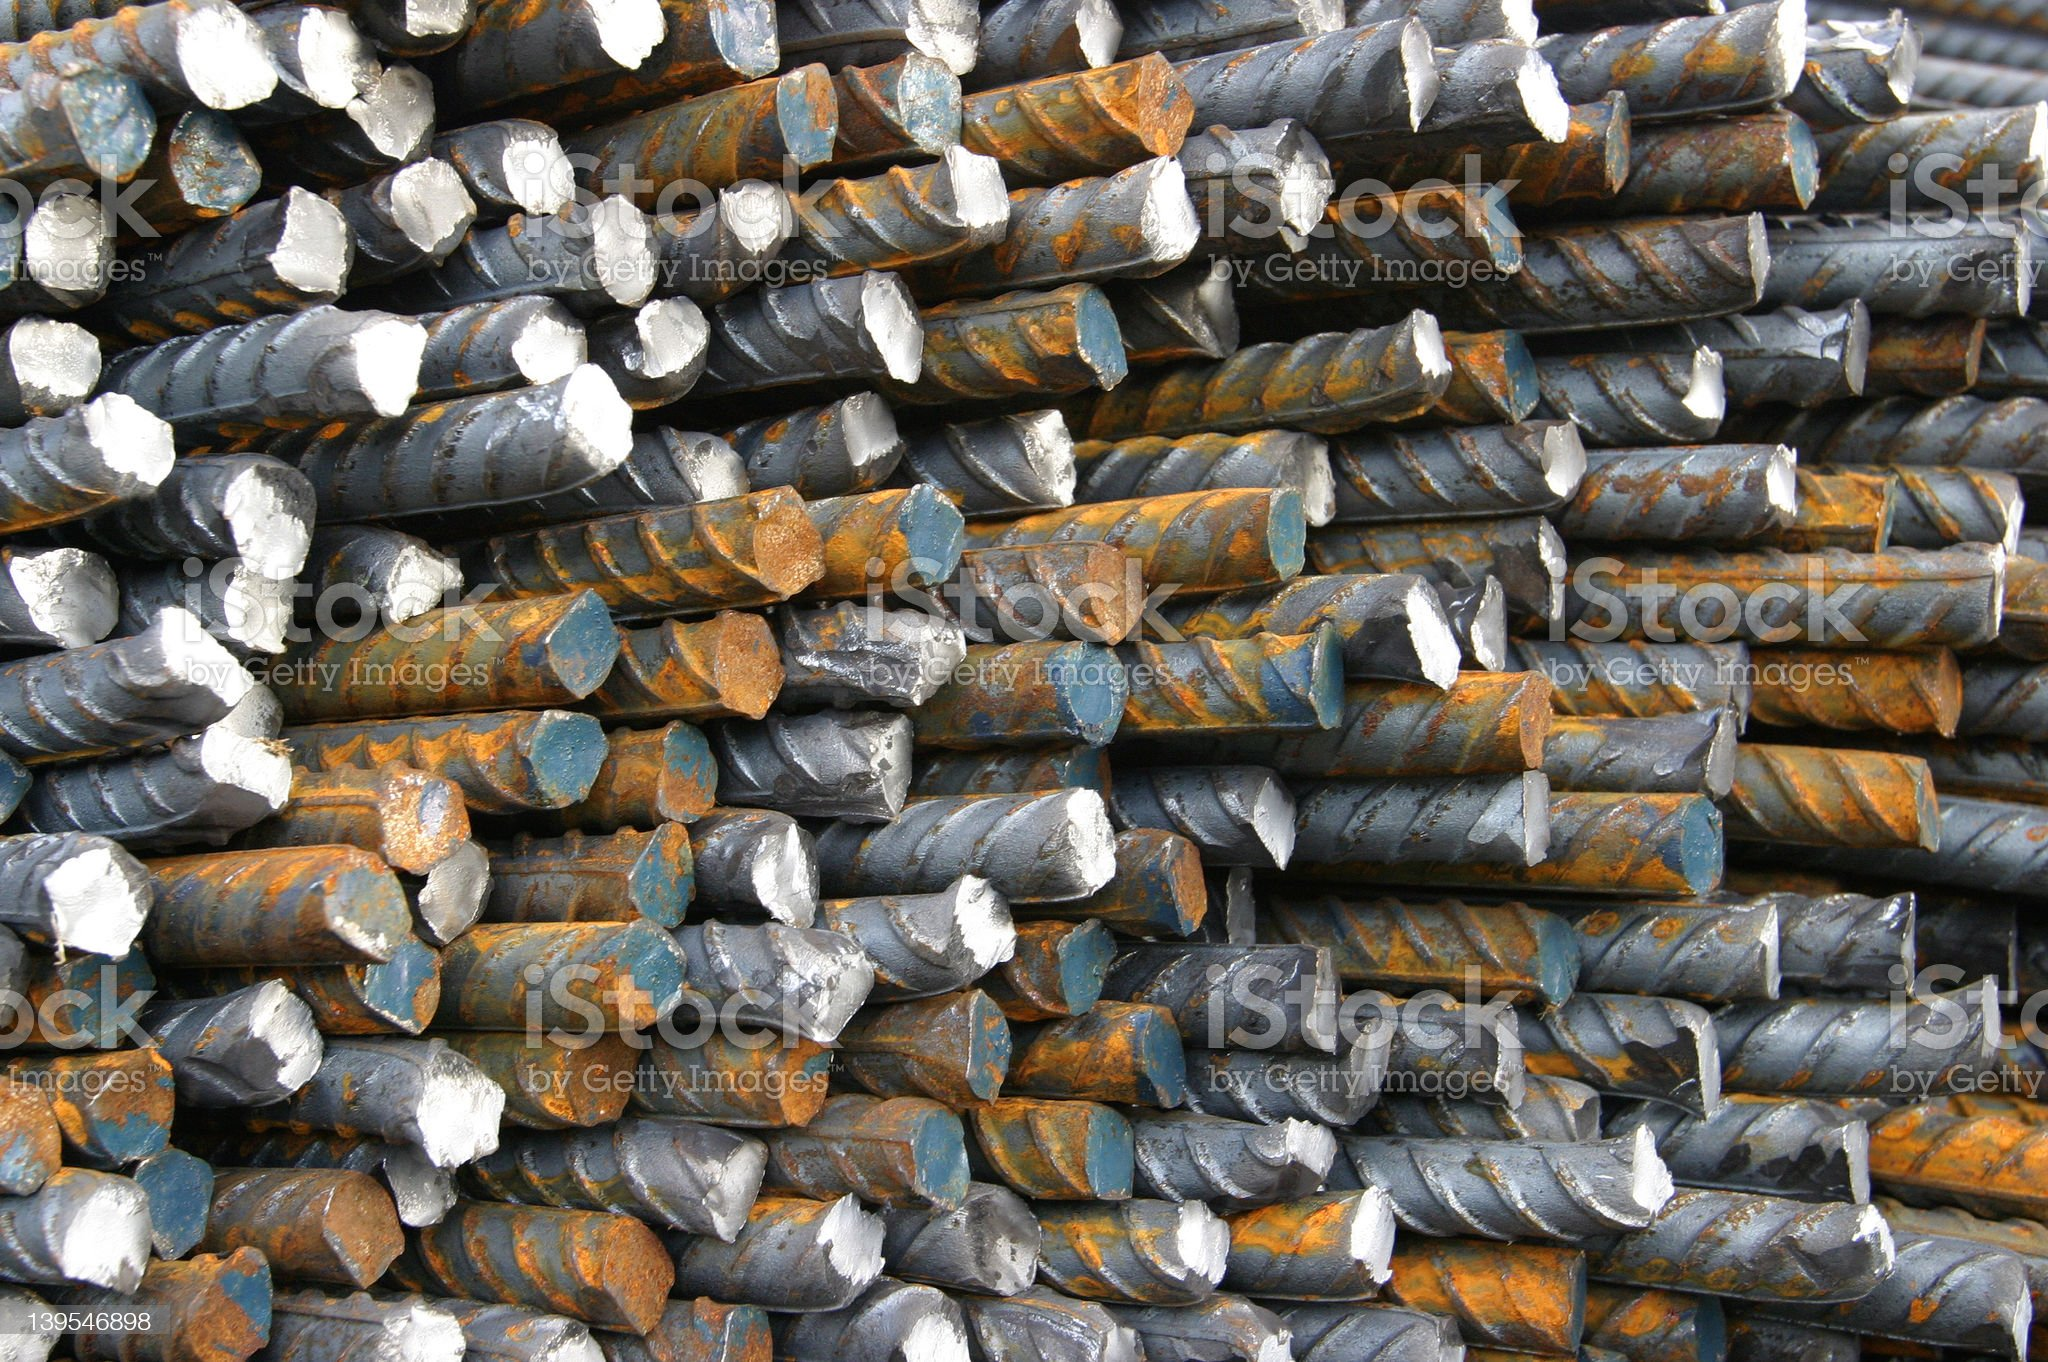 Steel Bars 2 royalty-free stock photo